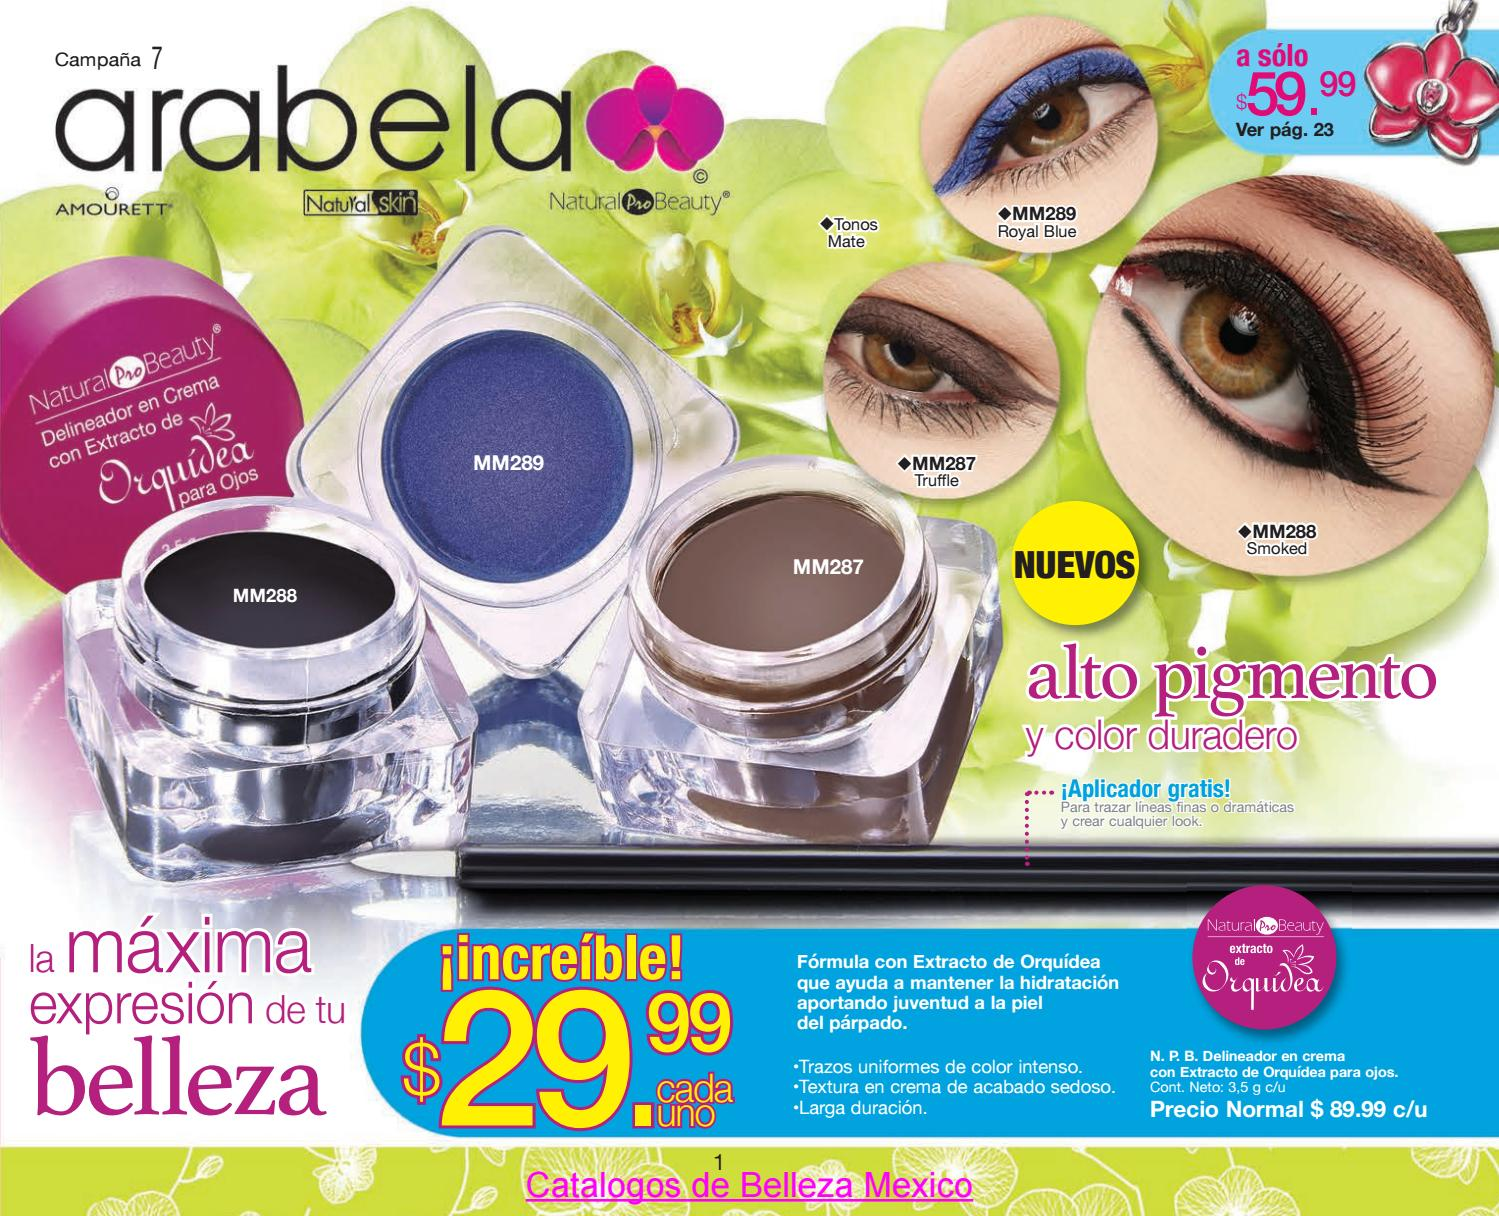 Arabela C-07 2017 by CatalogosMX by Revistas En linea - issuu